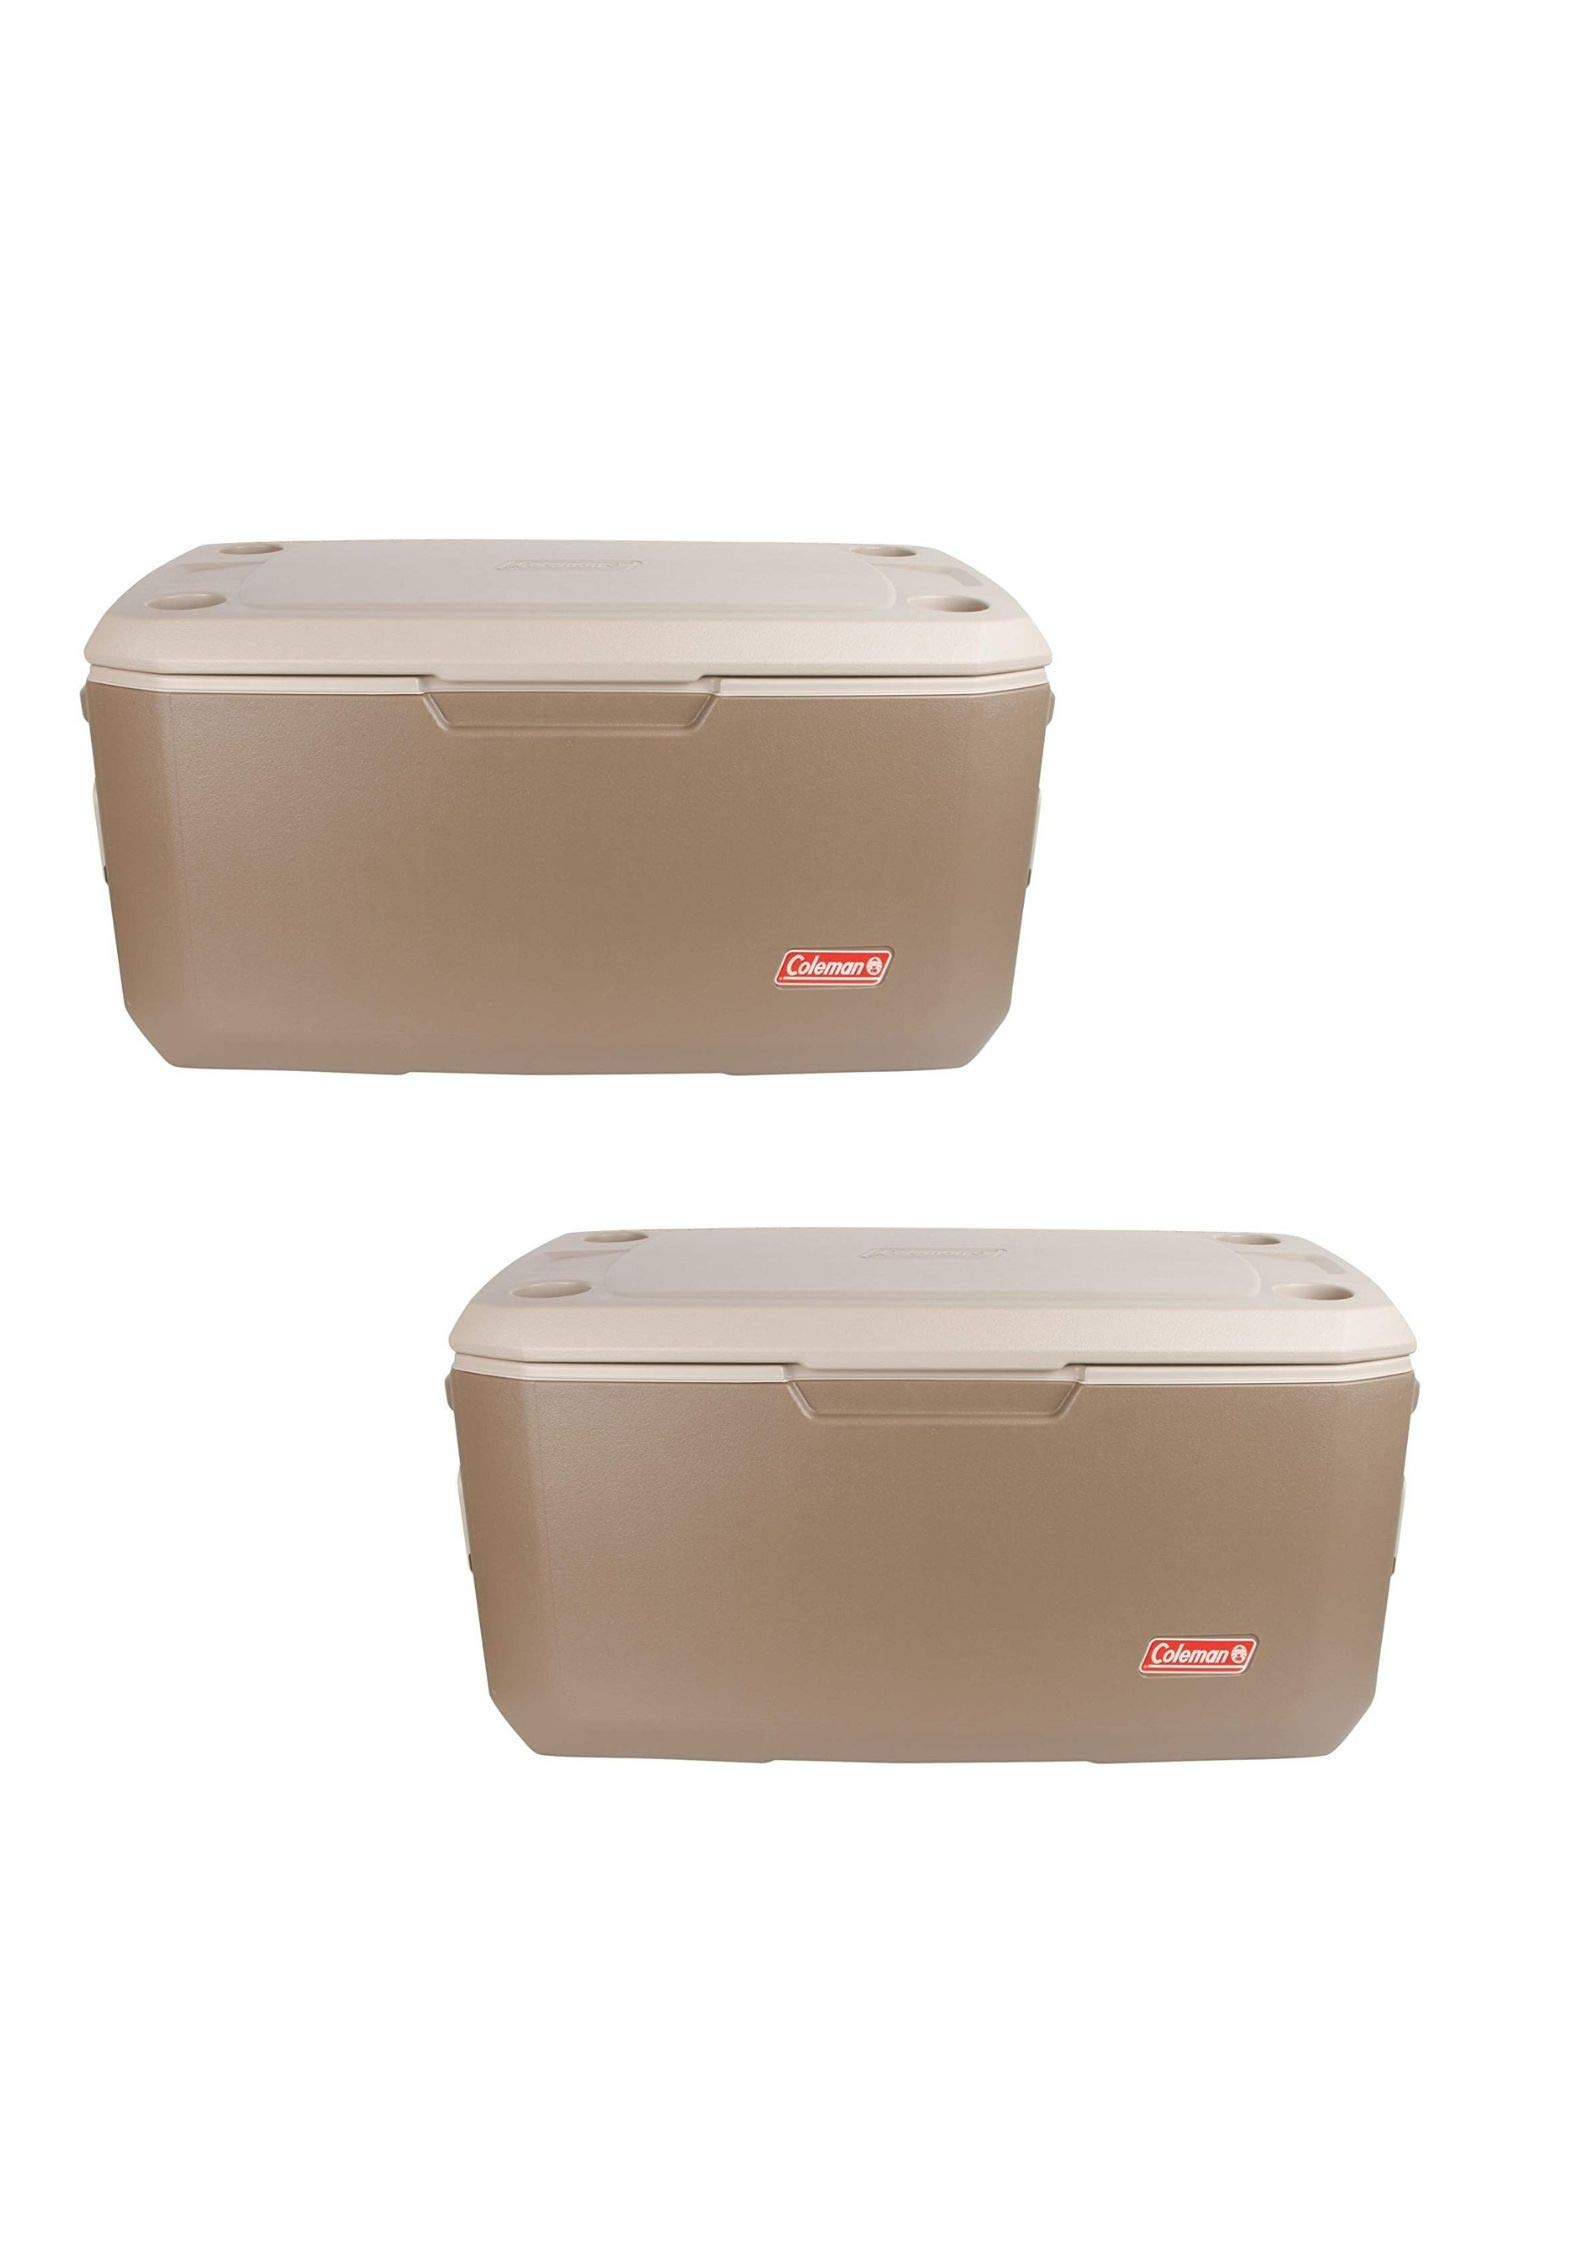 Coleman 120-Quart Xtreme 6-Day Heavy-Duty Cooler, Tan (120 Quart/Pack of 2)